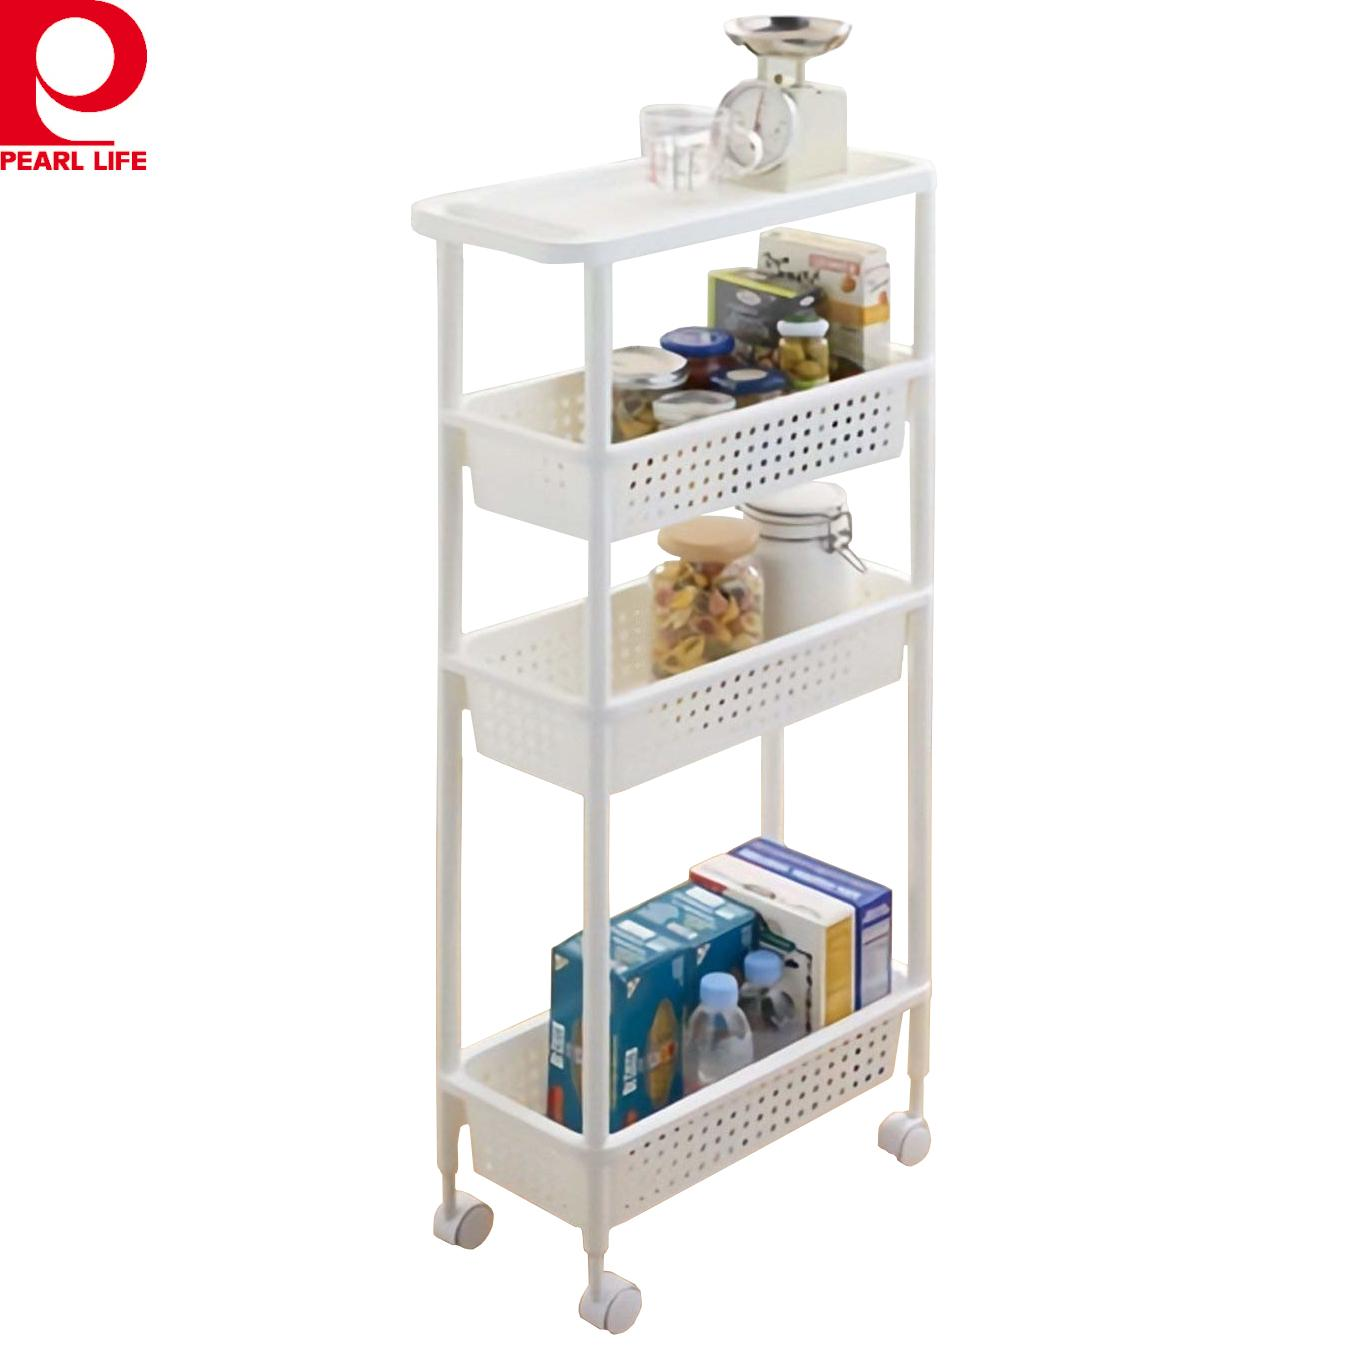 [Japan] 4 Tier Cart Storage Rack Slim Type  / kitchen multi-function shelf movable with wheels space saving white / Made in Japan